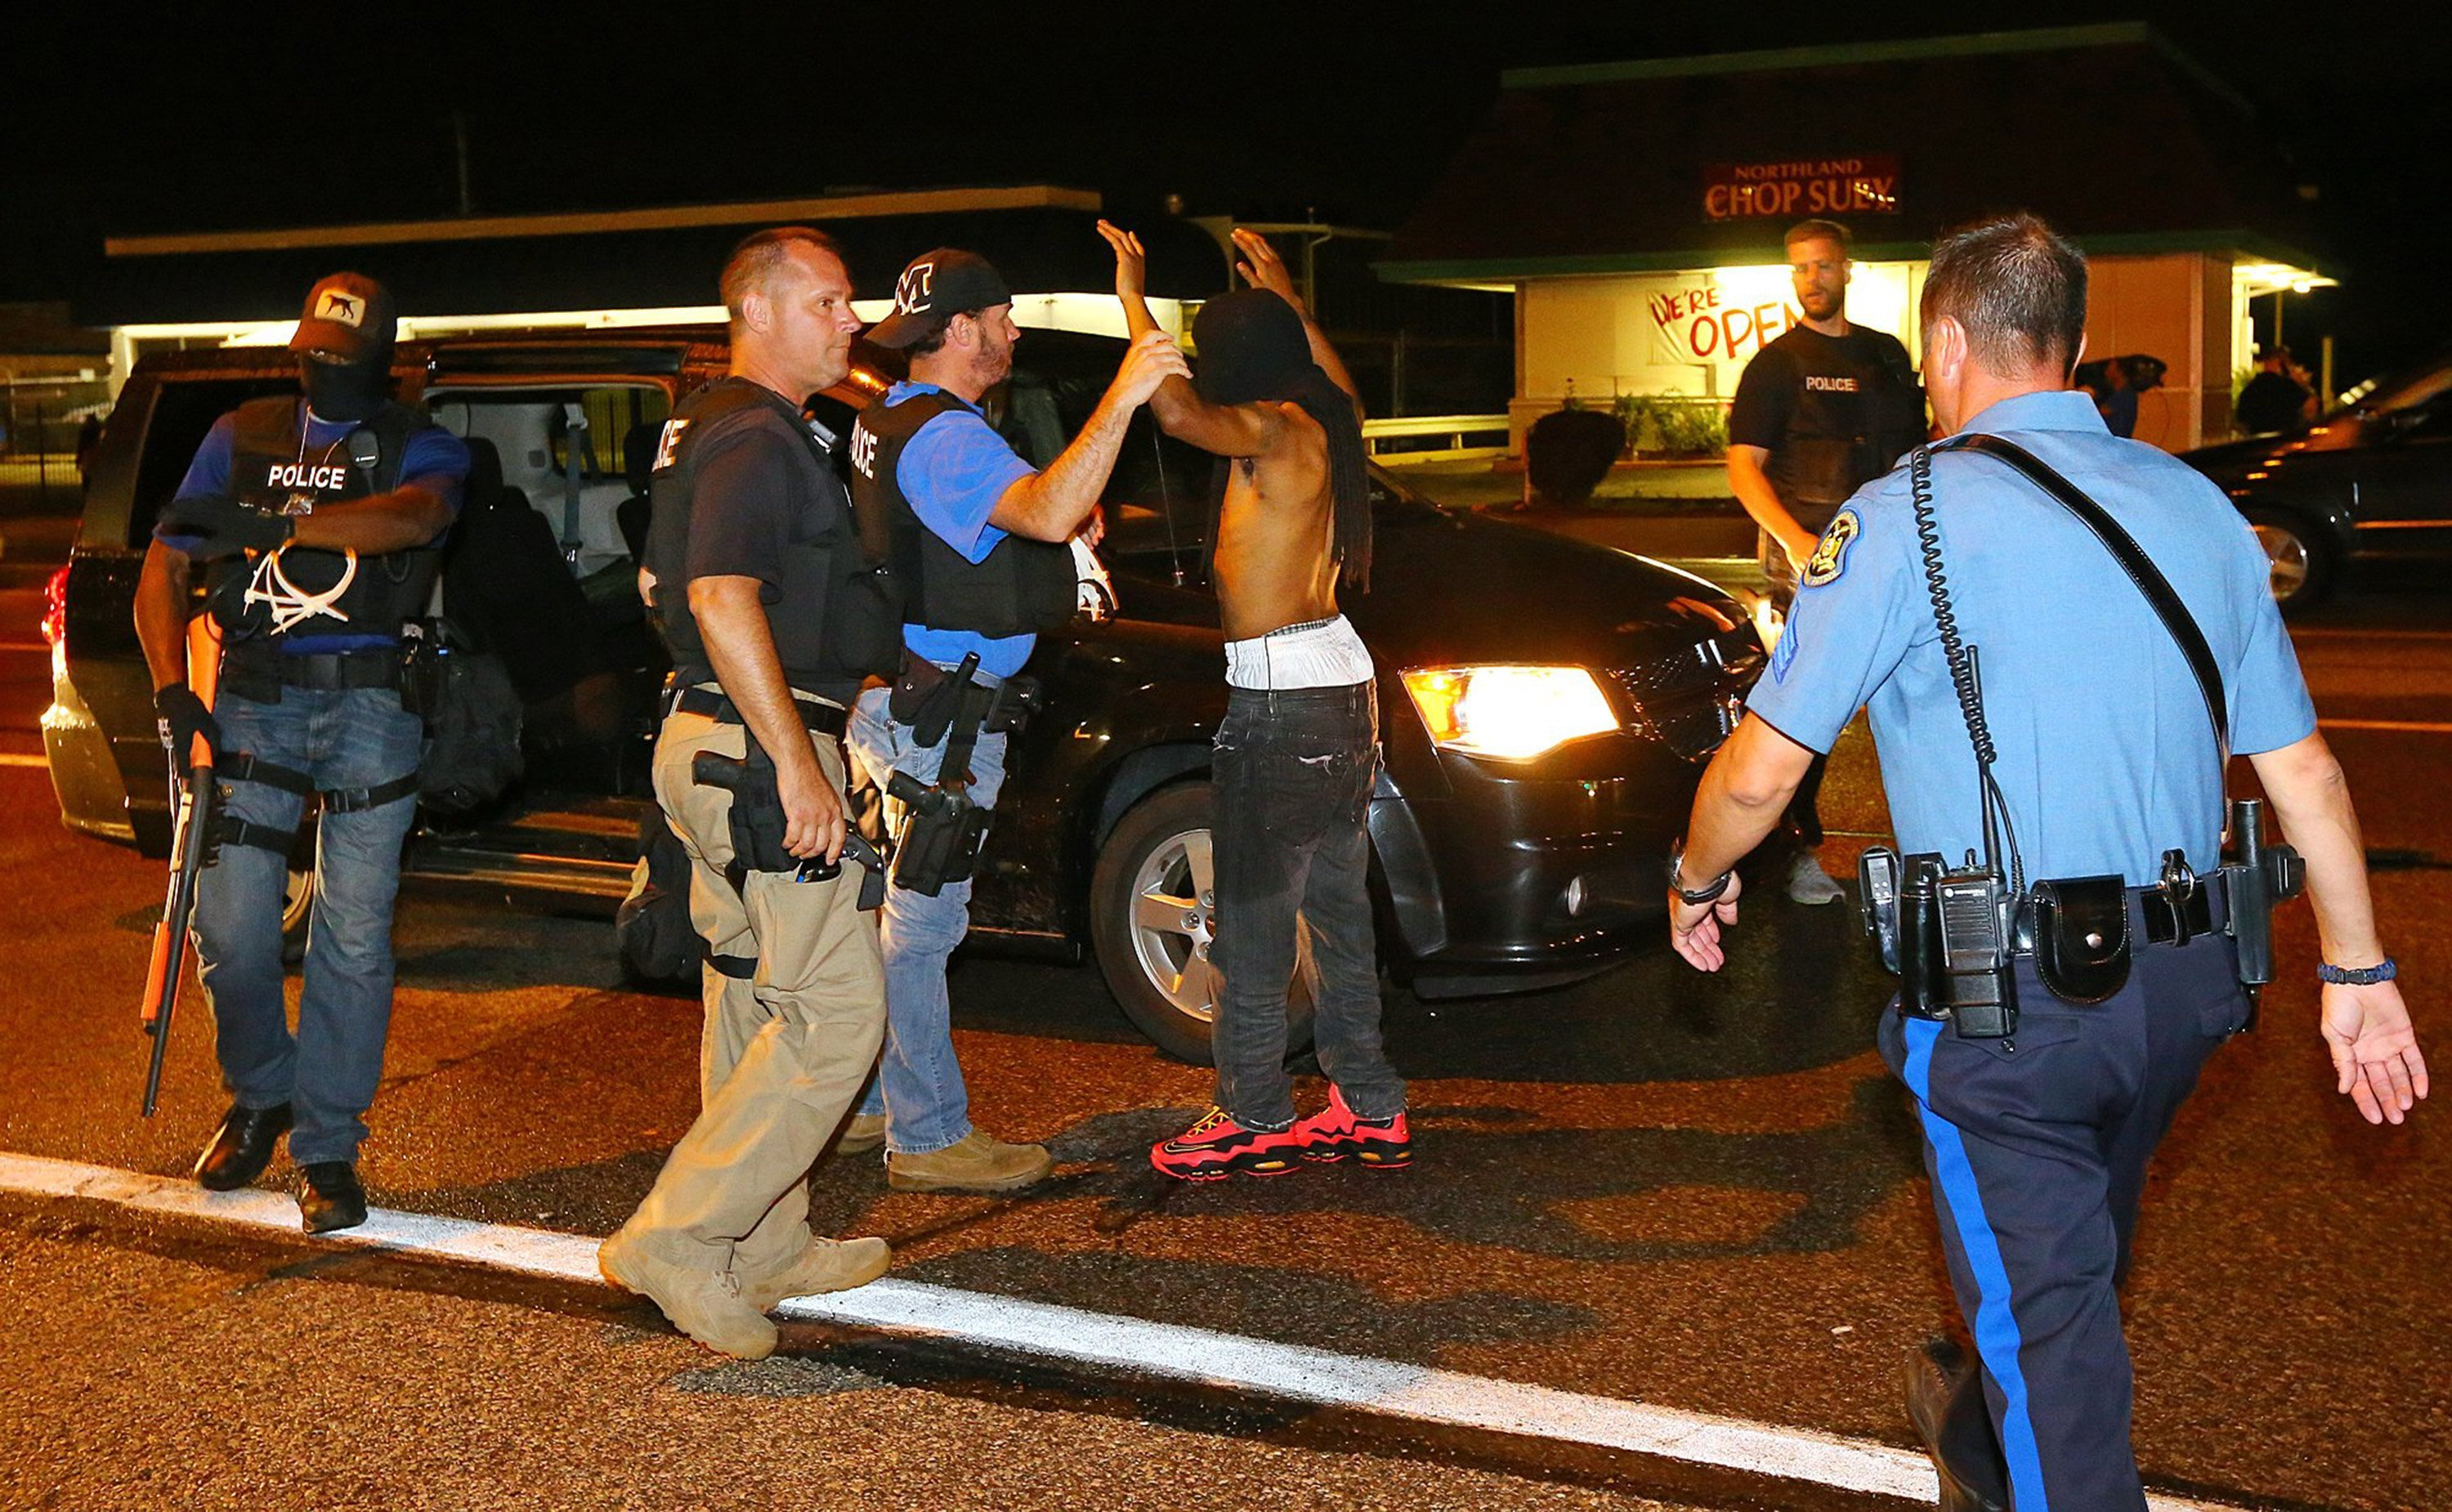 A protester is arrested while walking down the street on West Florissant Avenue on a relatively peaceful night on Wednesday, August 20, 2014, in Ferguson, Mo. (Curtis Compton/Atlanta Journal-Constitution/MCT)